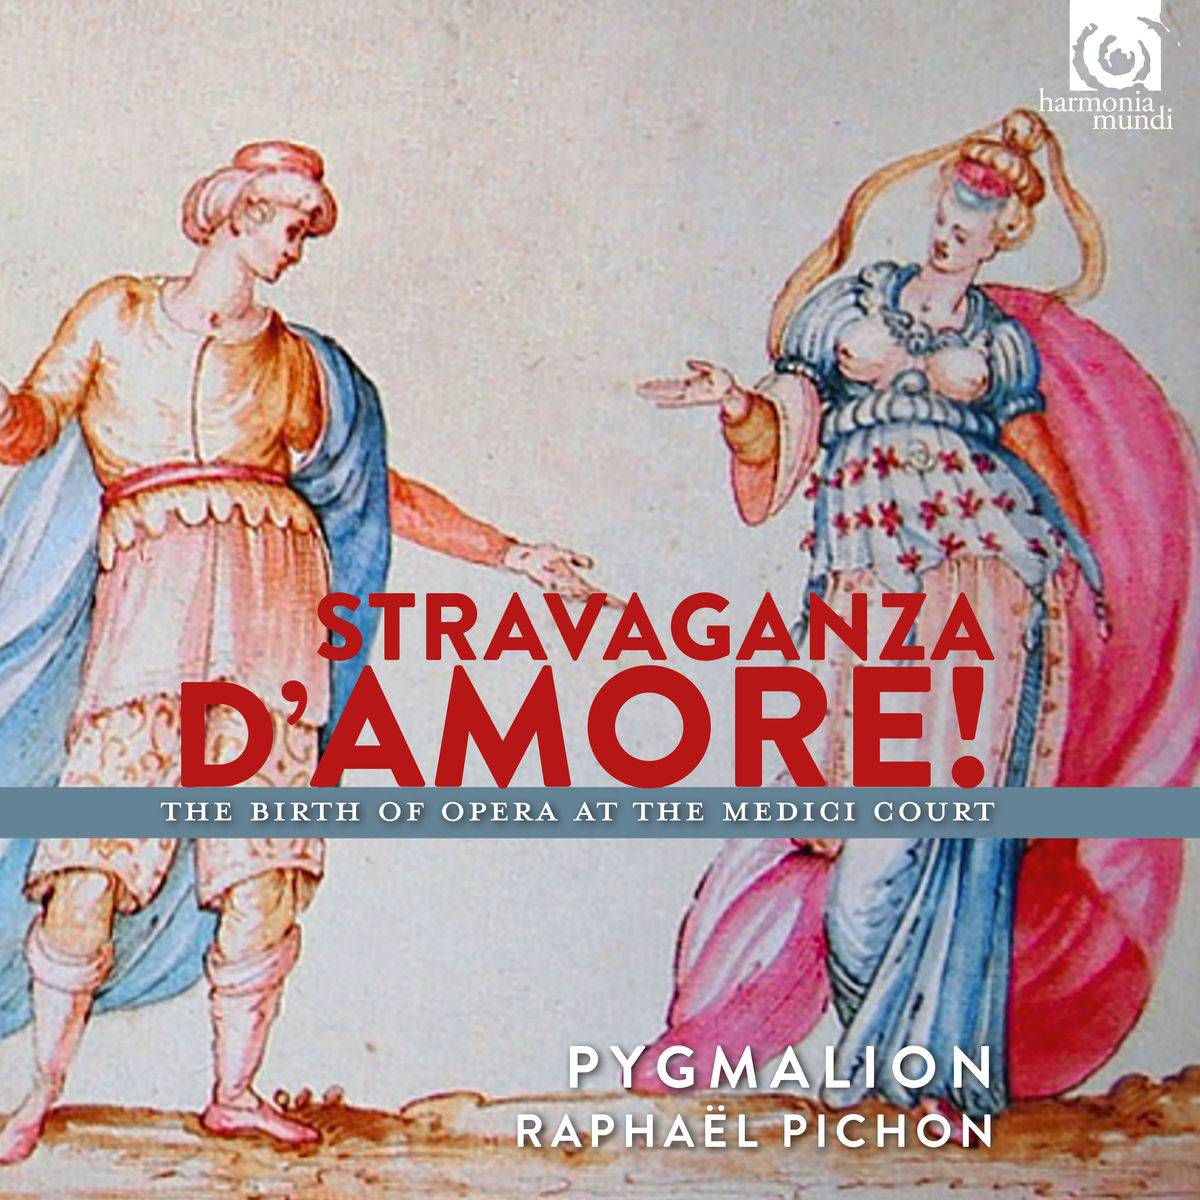 Pygmalion & Raphaël Pichon - Stravaganza d'amore! The Birth of Opera at the Medici Court (2017) [24/96]